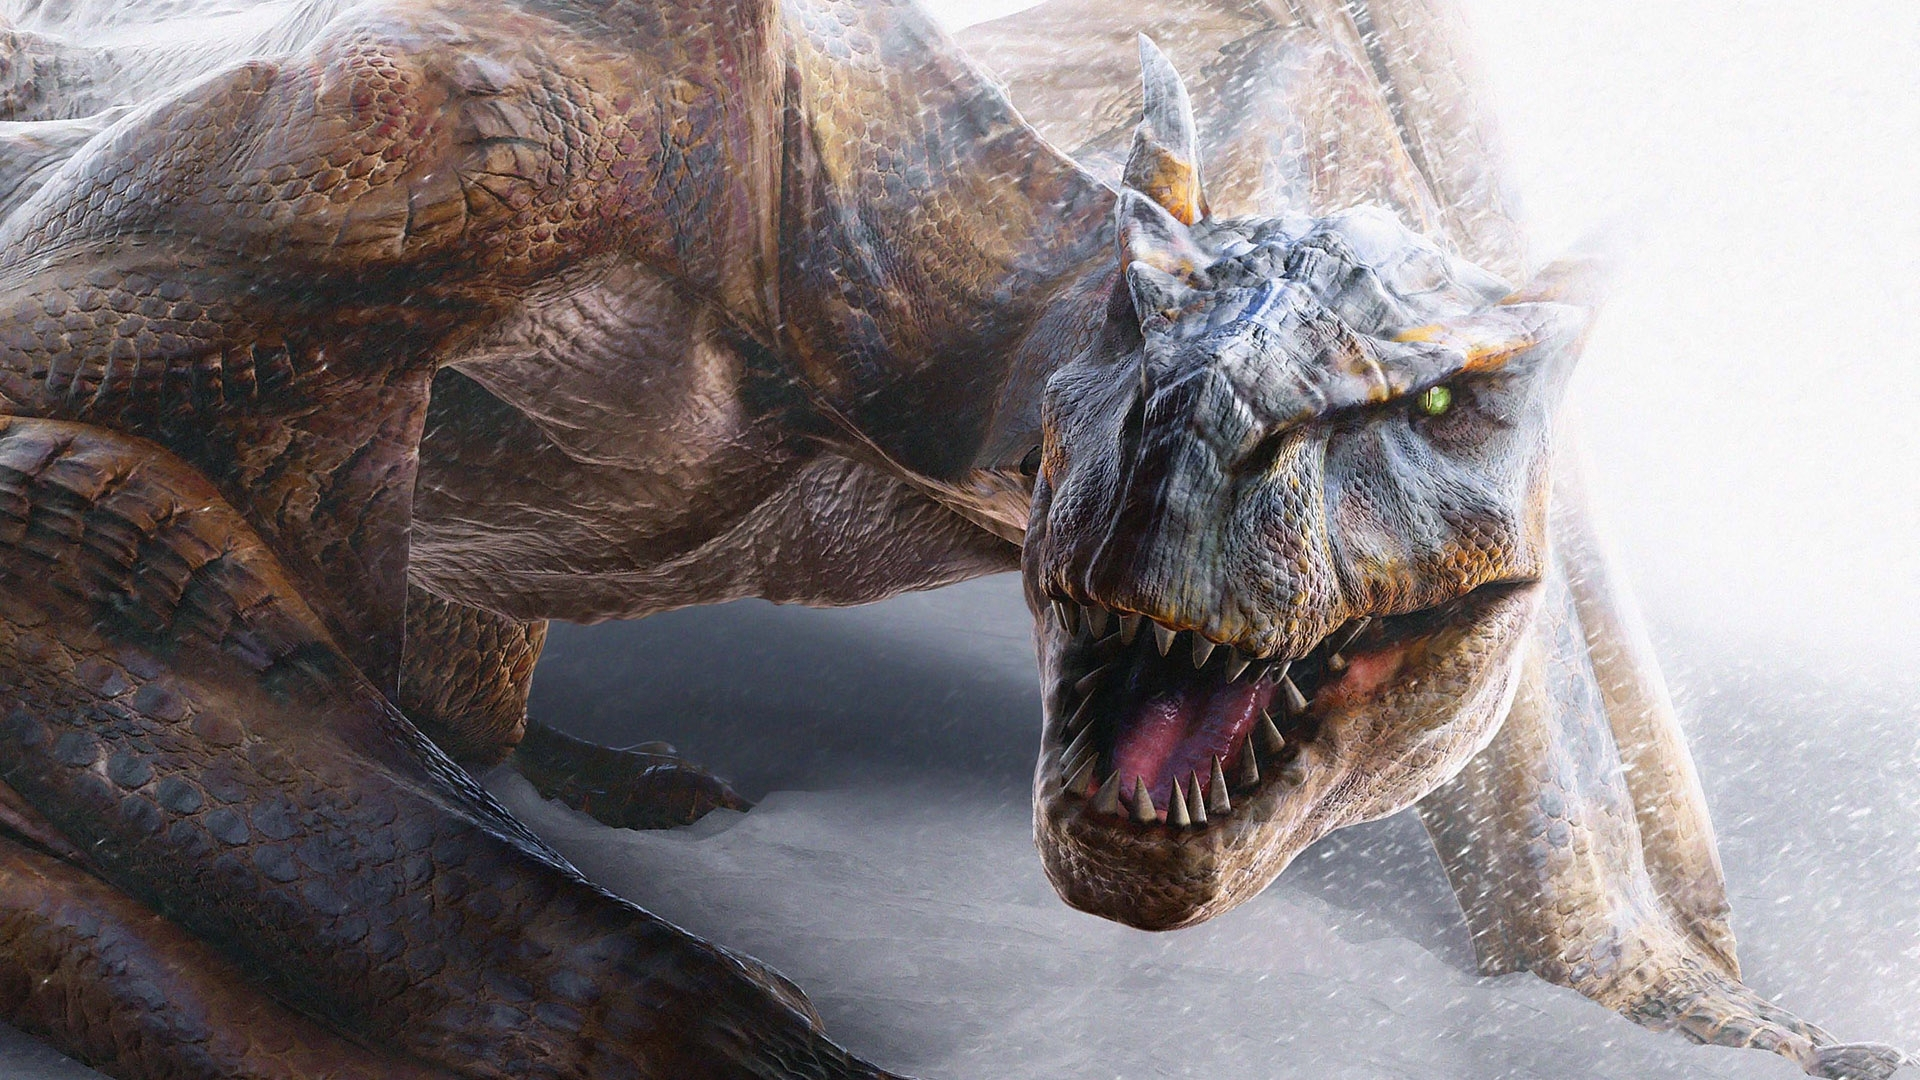 8003 download wallpaper Animals, Dragons, Dinosaurs screensavers and pictures for free